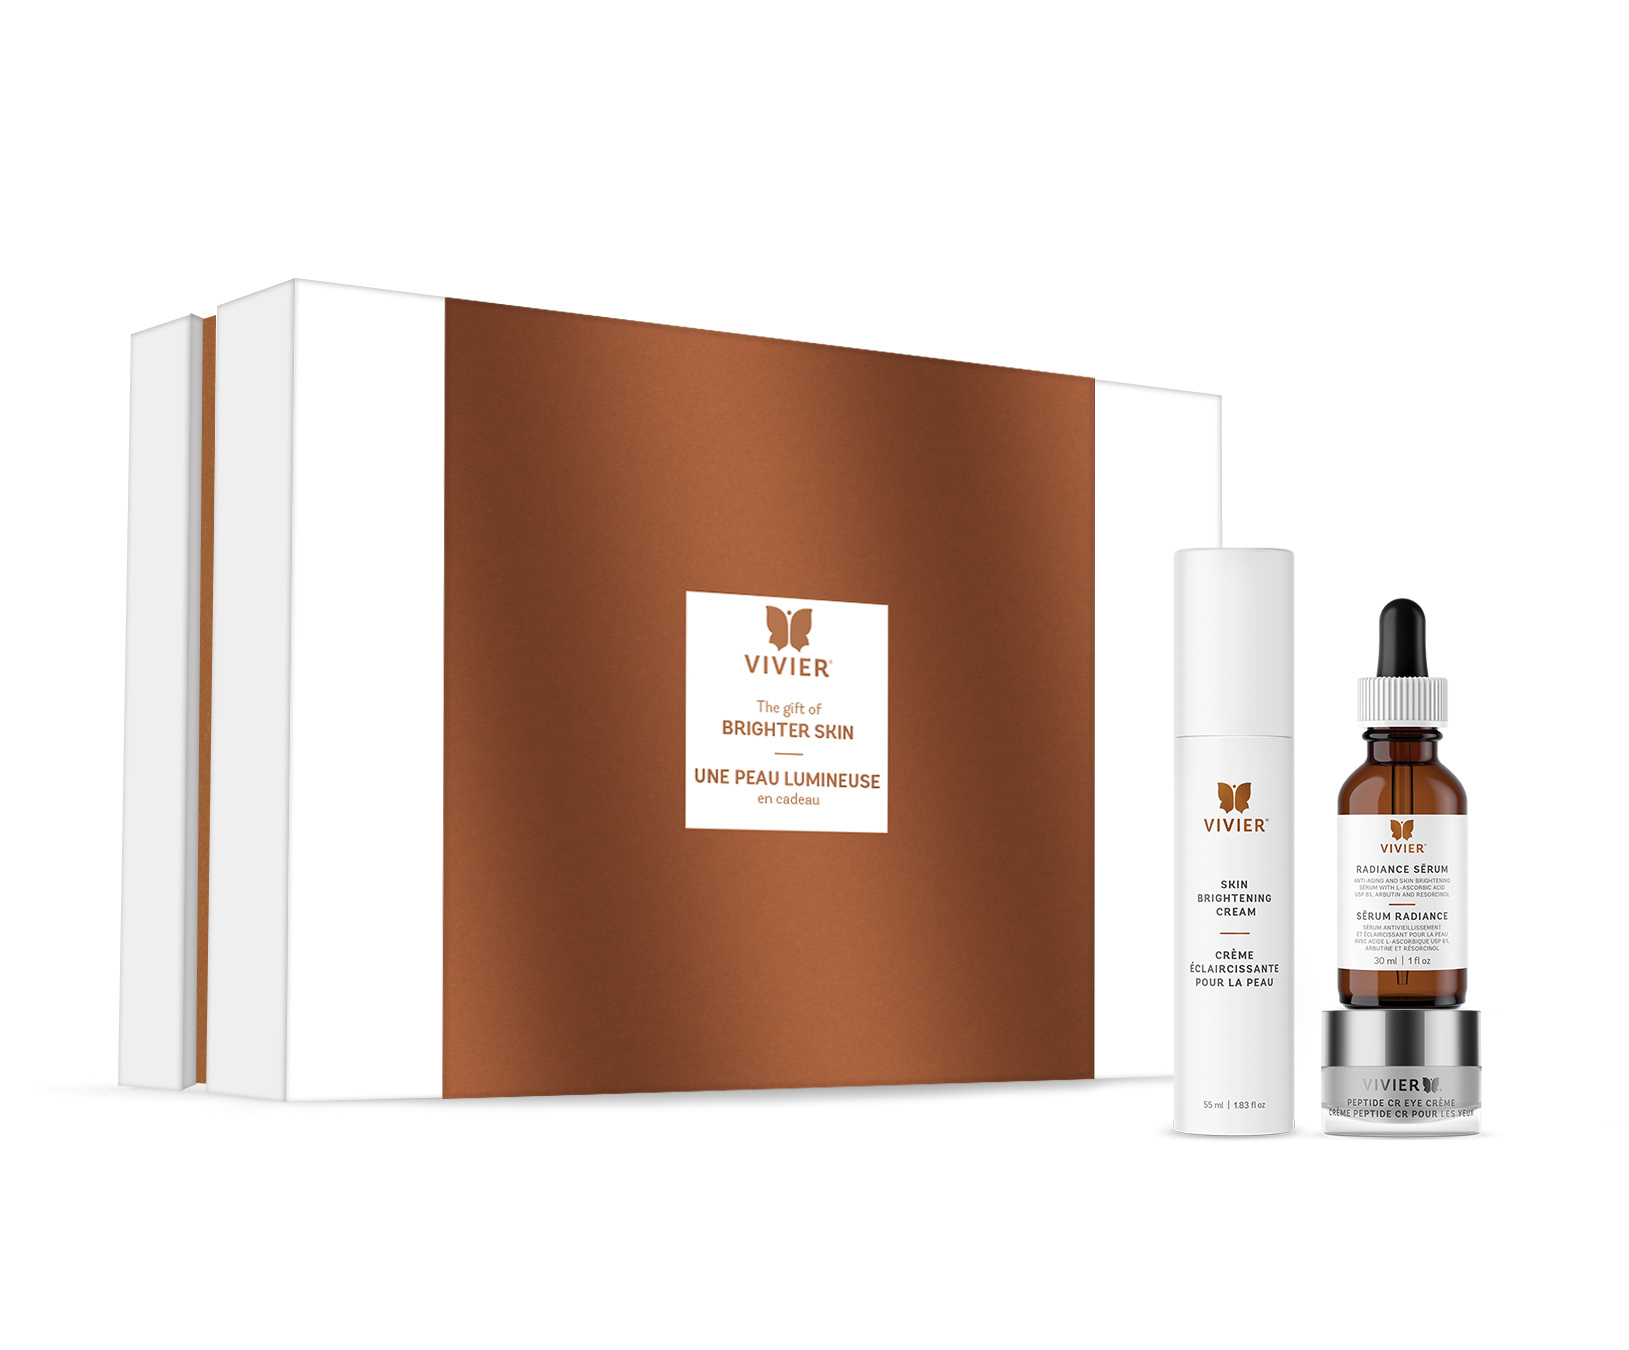 Vivier Holiday Gift Set Limited Edition - Brighter Skin